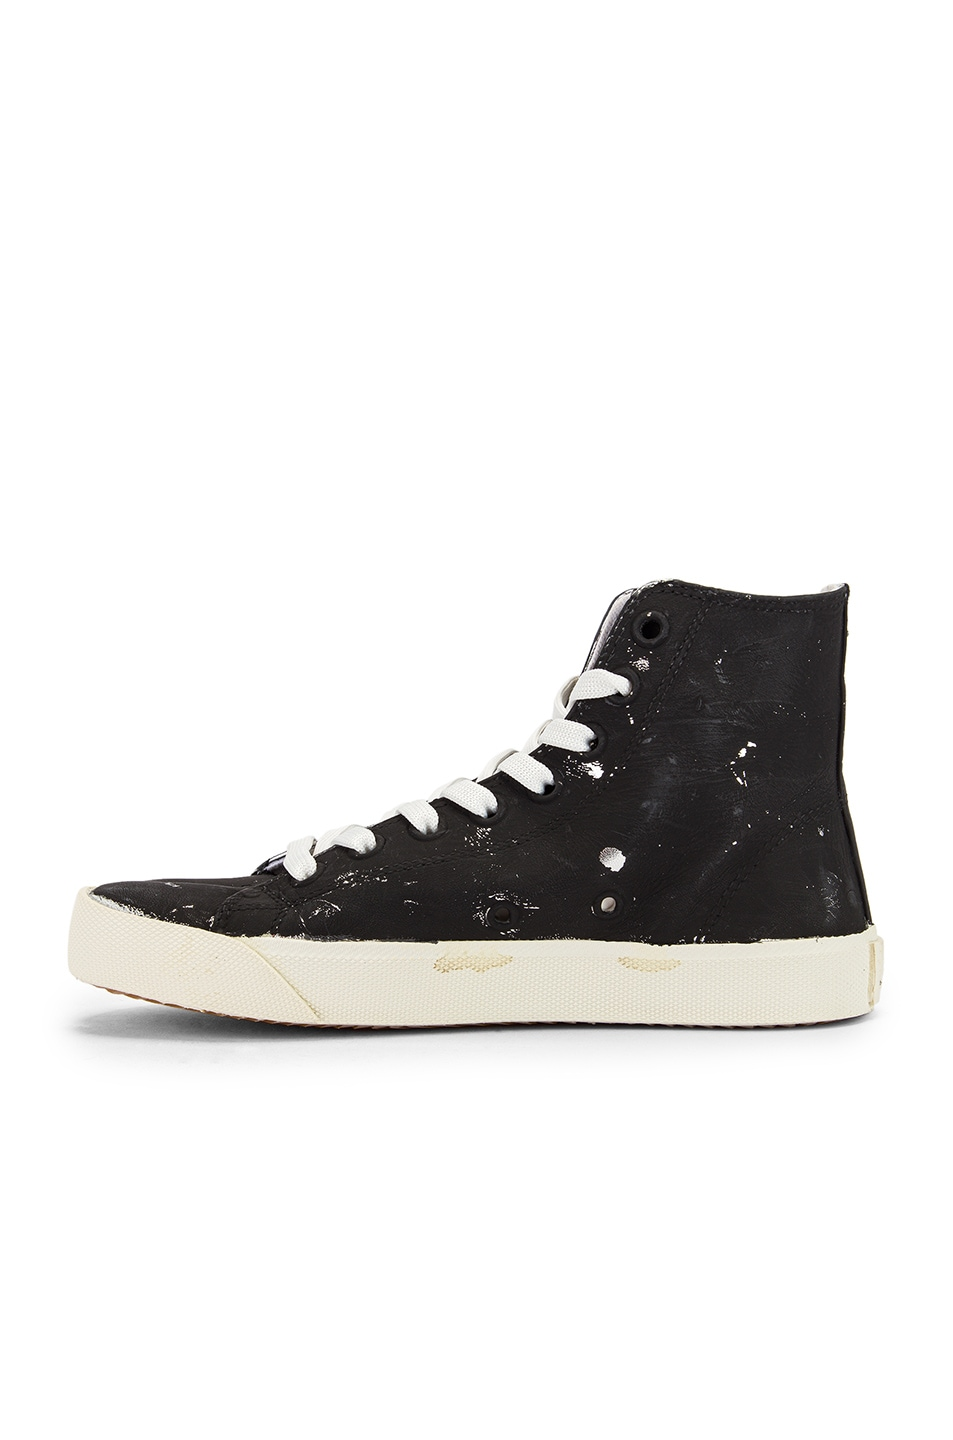 Image 5 of Maison Margiela High Top Tabi Sneakers in Black & Silver